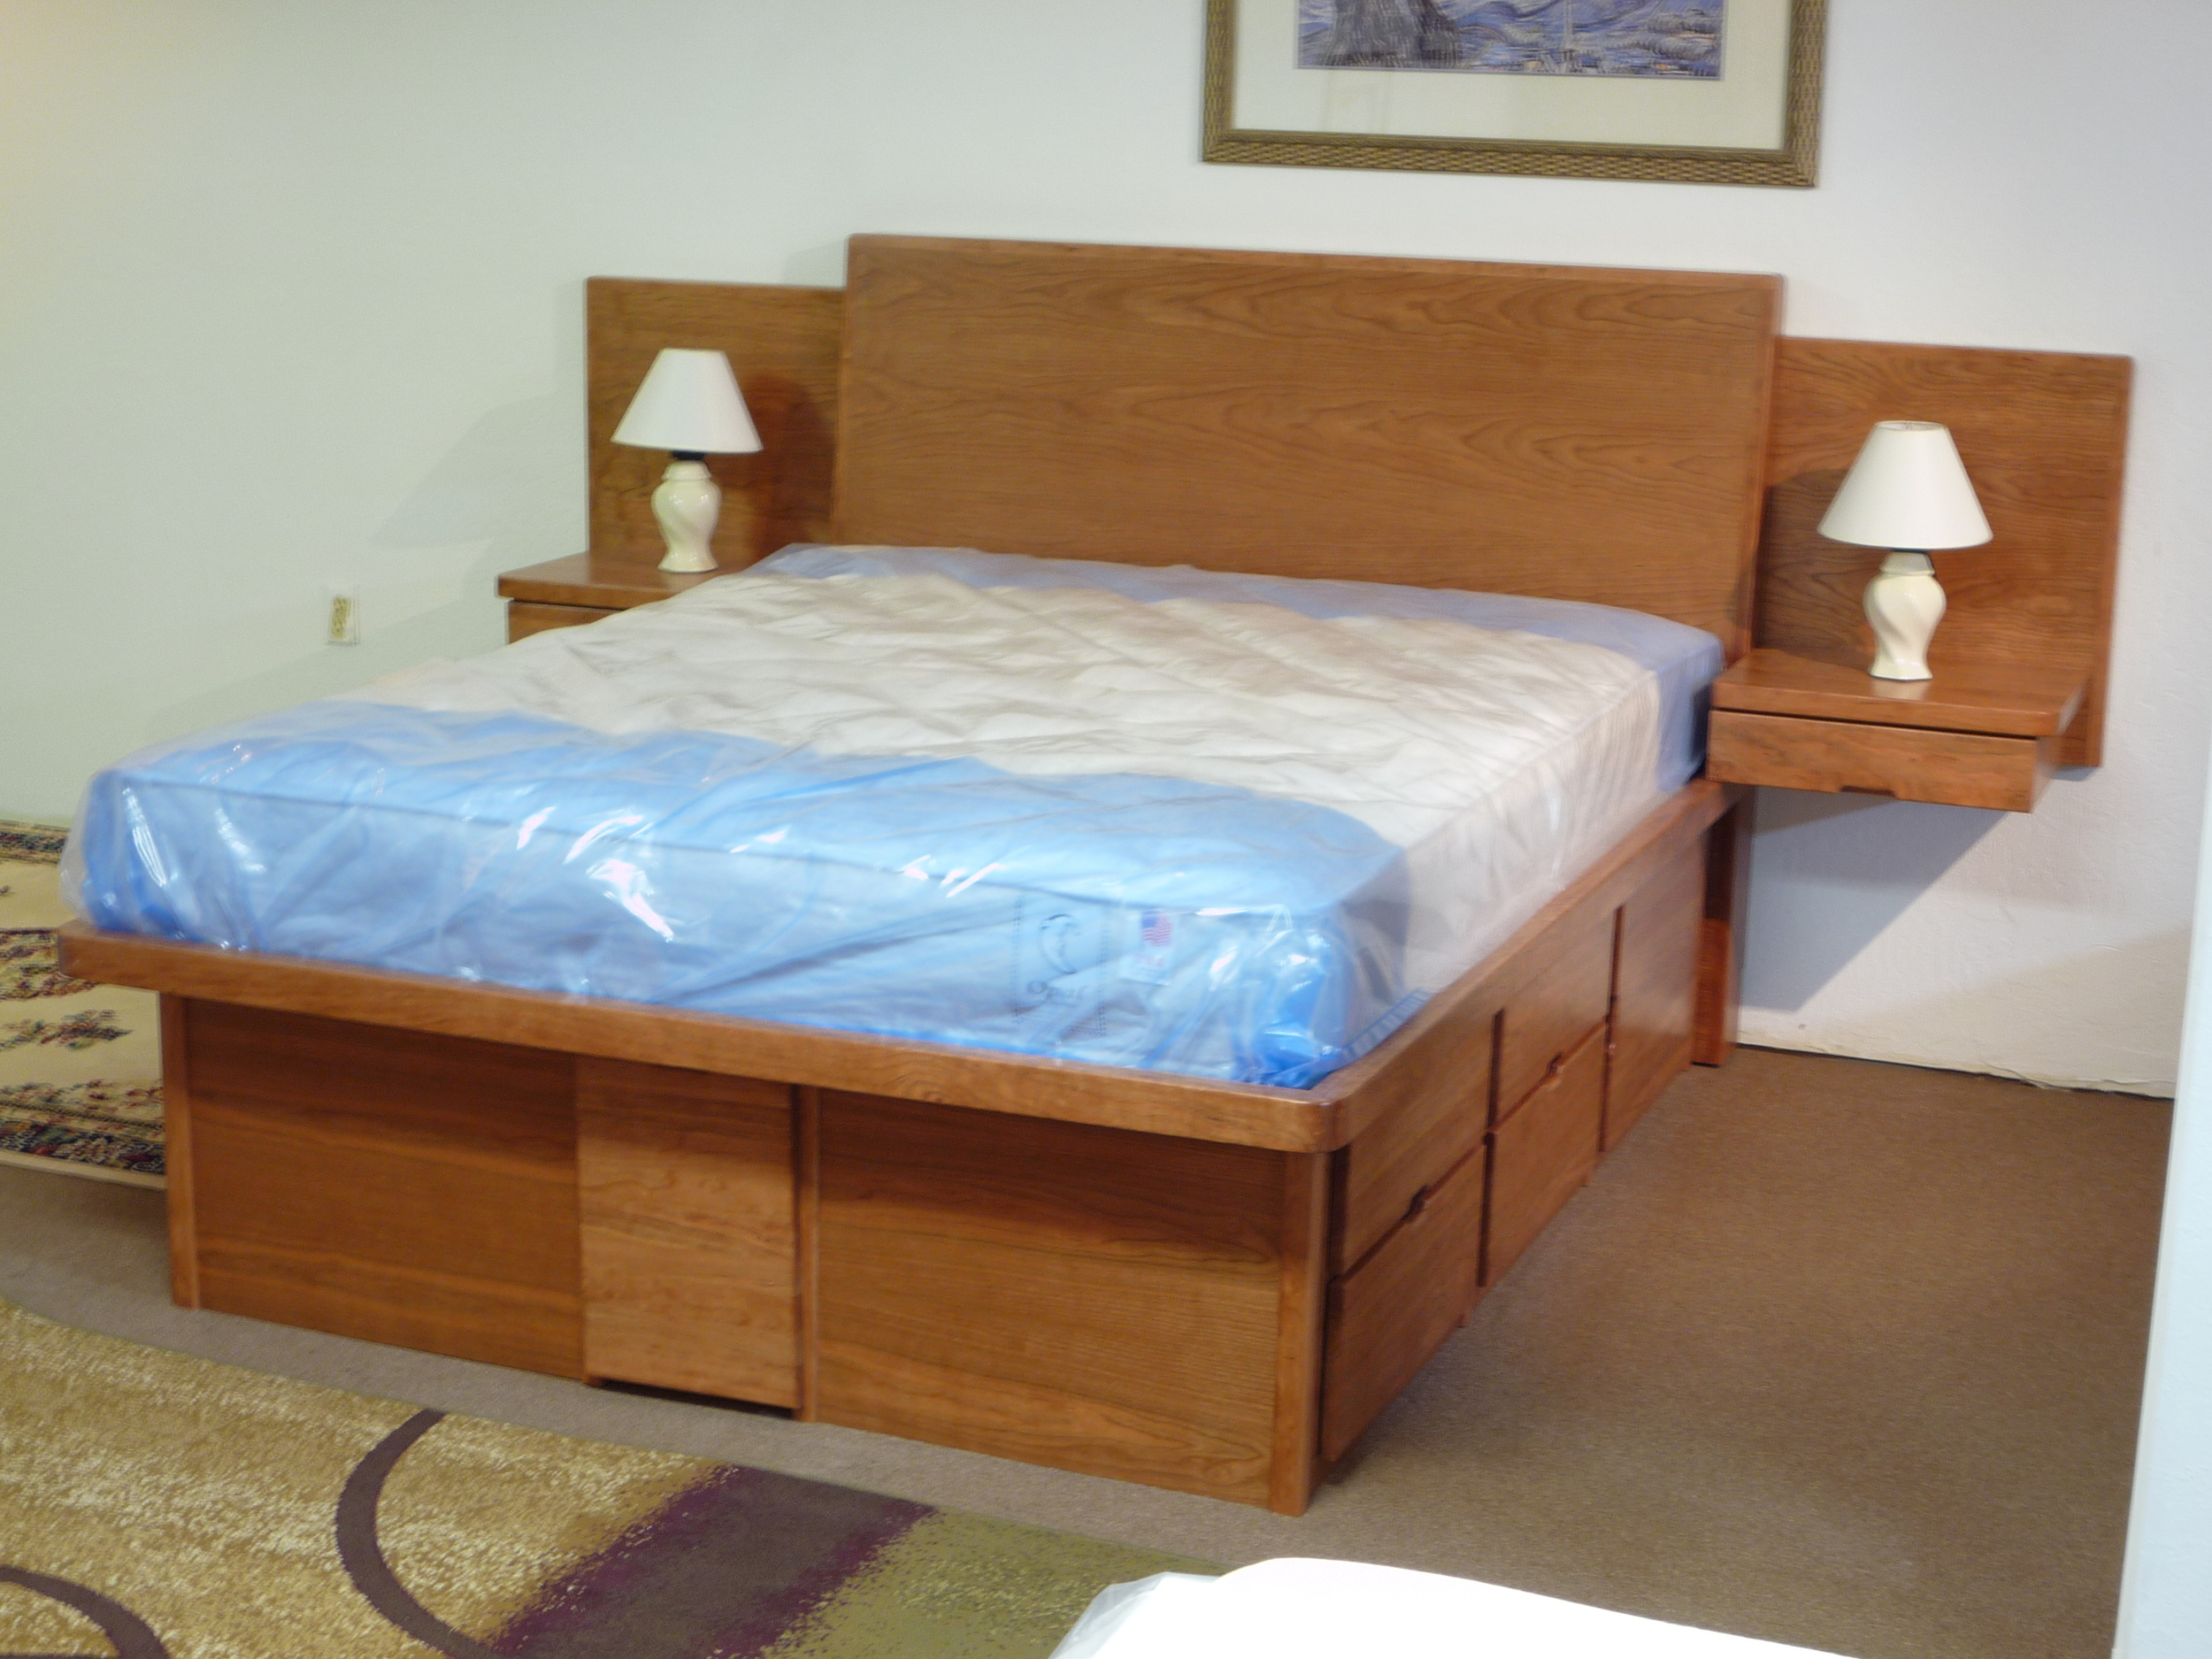 chestbed-floating-nightstands-1.JPG